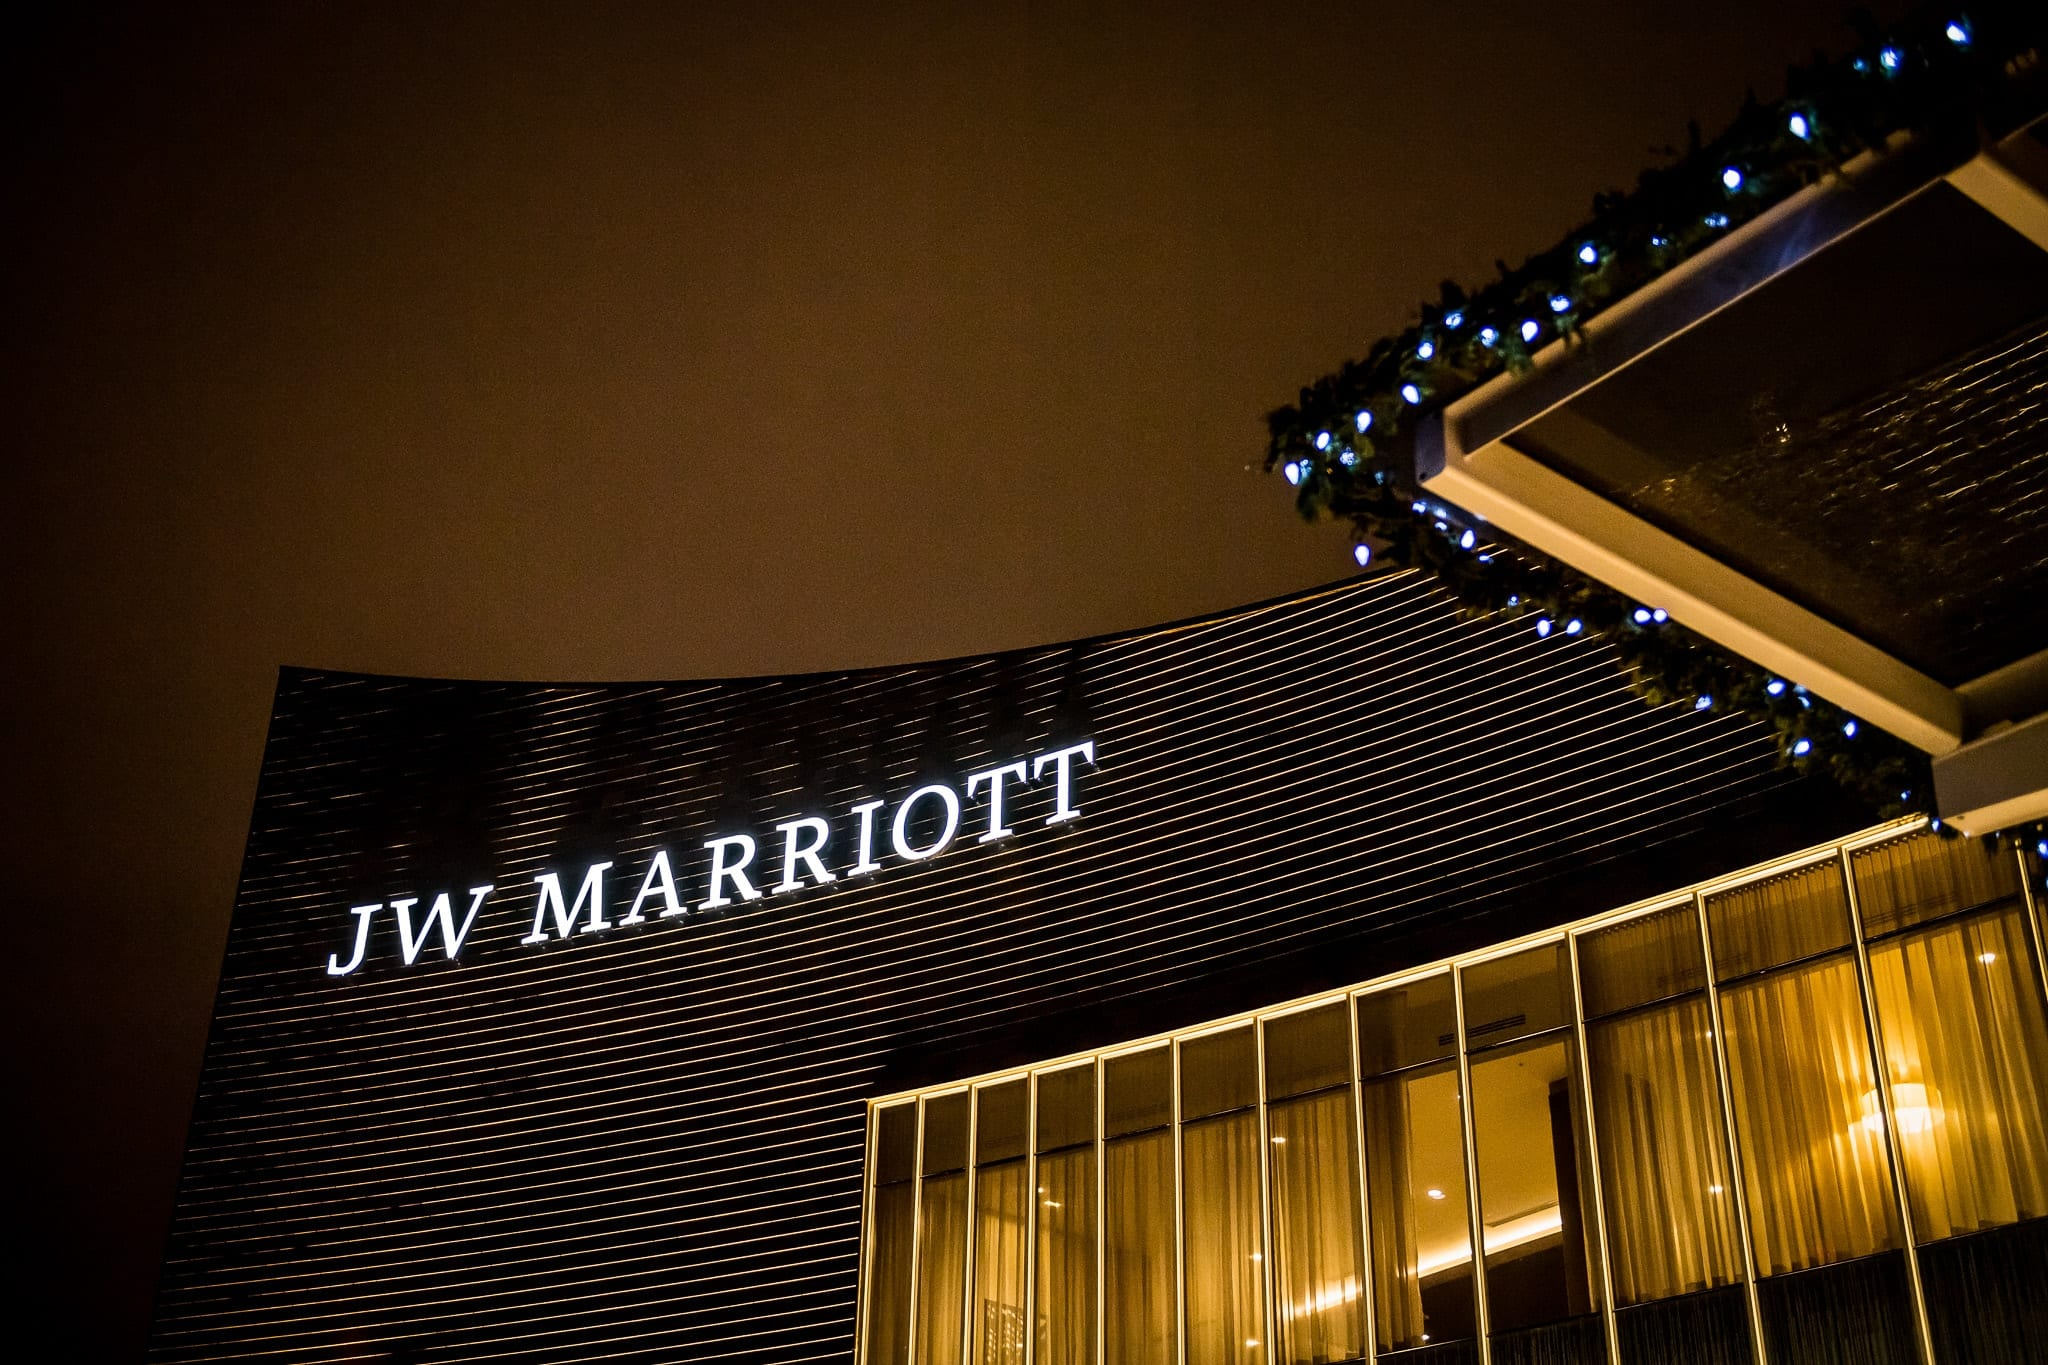 Exterior shot of the building during a winter wedding at the JW Marriott Mall of America